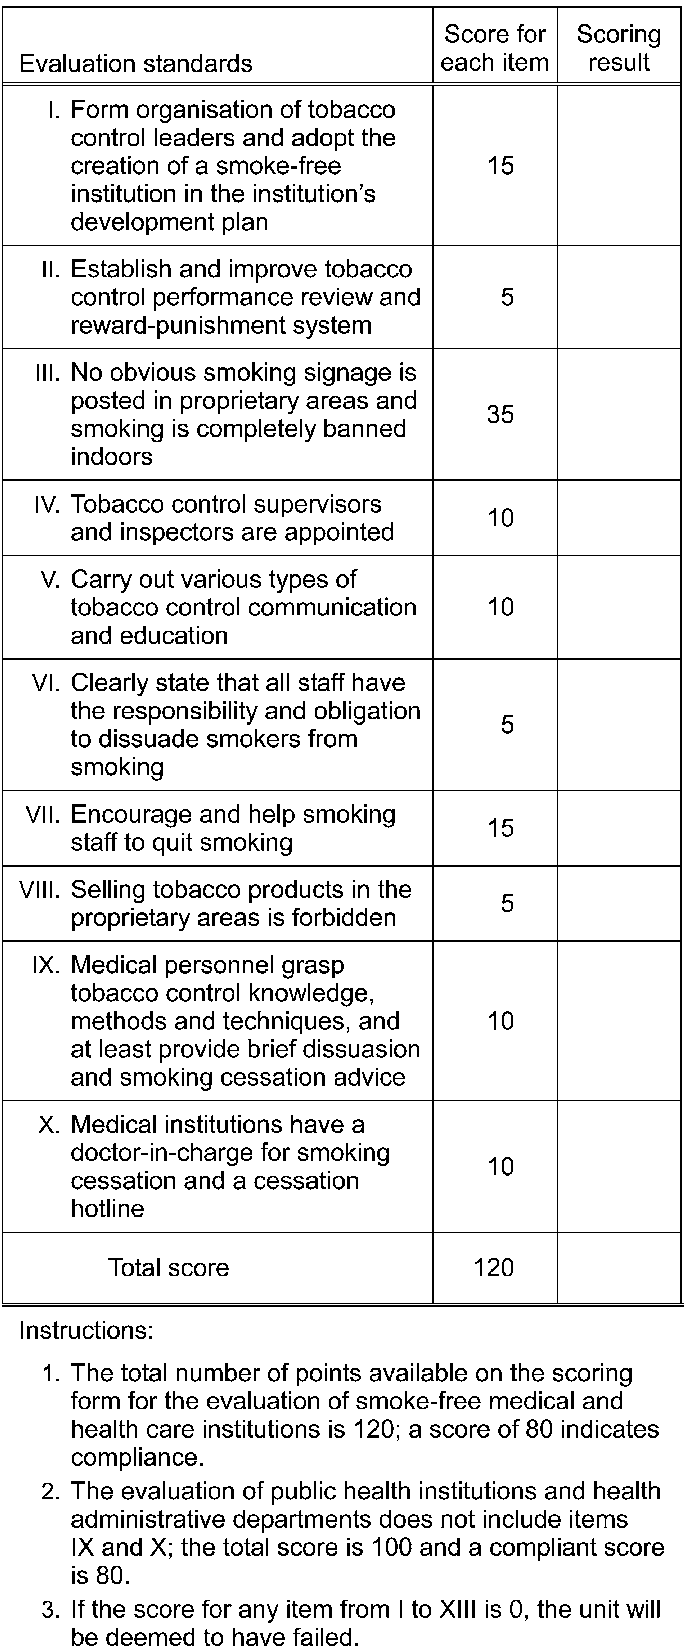 hight resolution of figure scoring form based on evaluation standards for smoke free medical and health care institutions adapted from ministry of health state administration